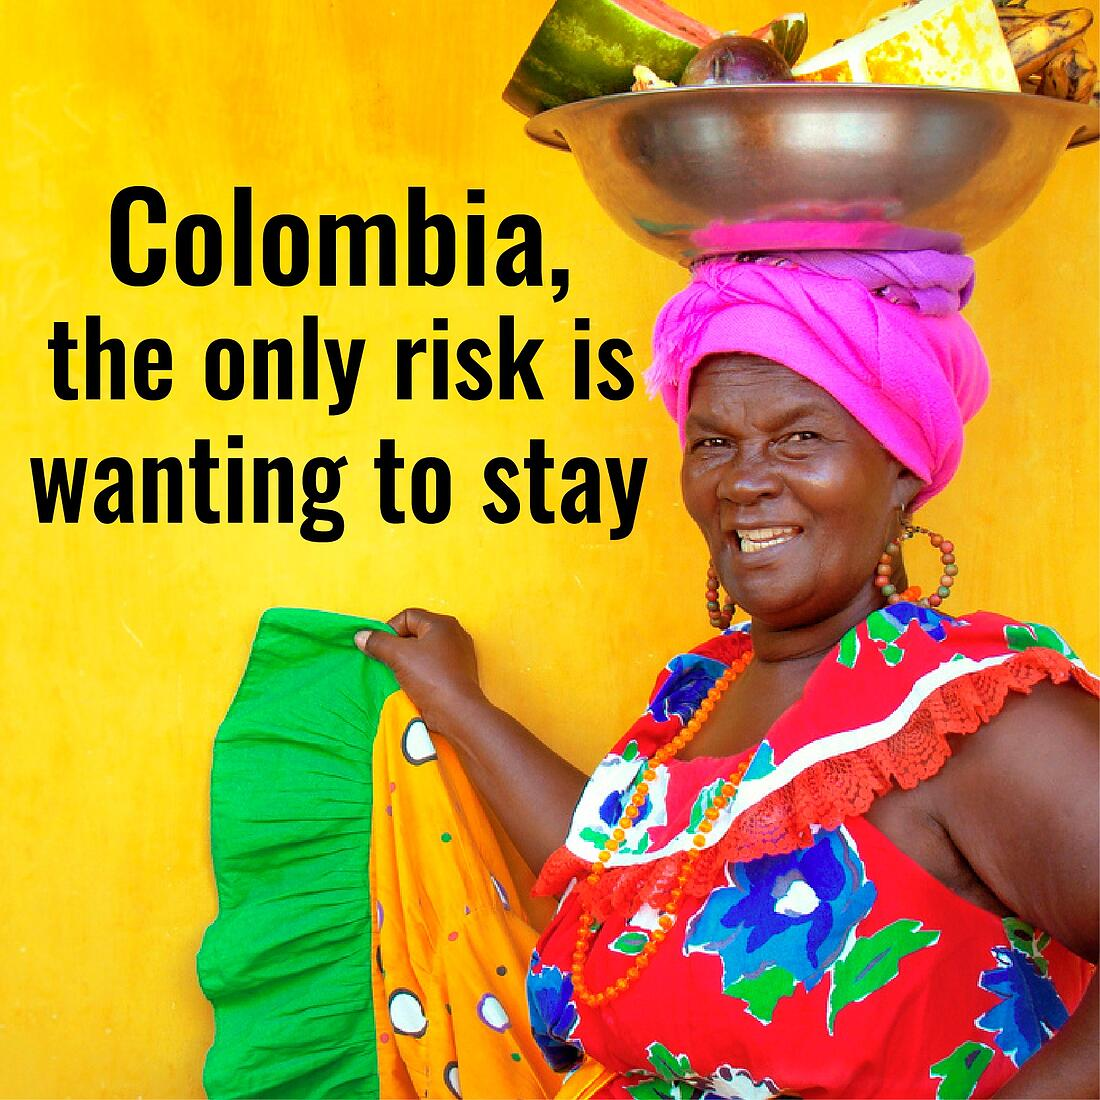 Colombia-stay-01.jpg